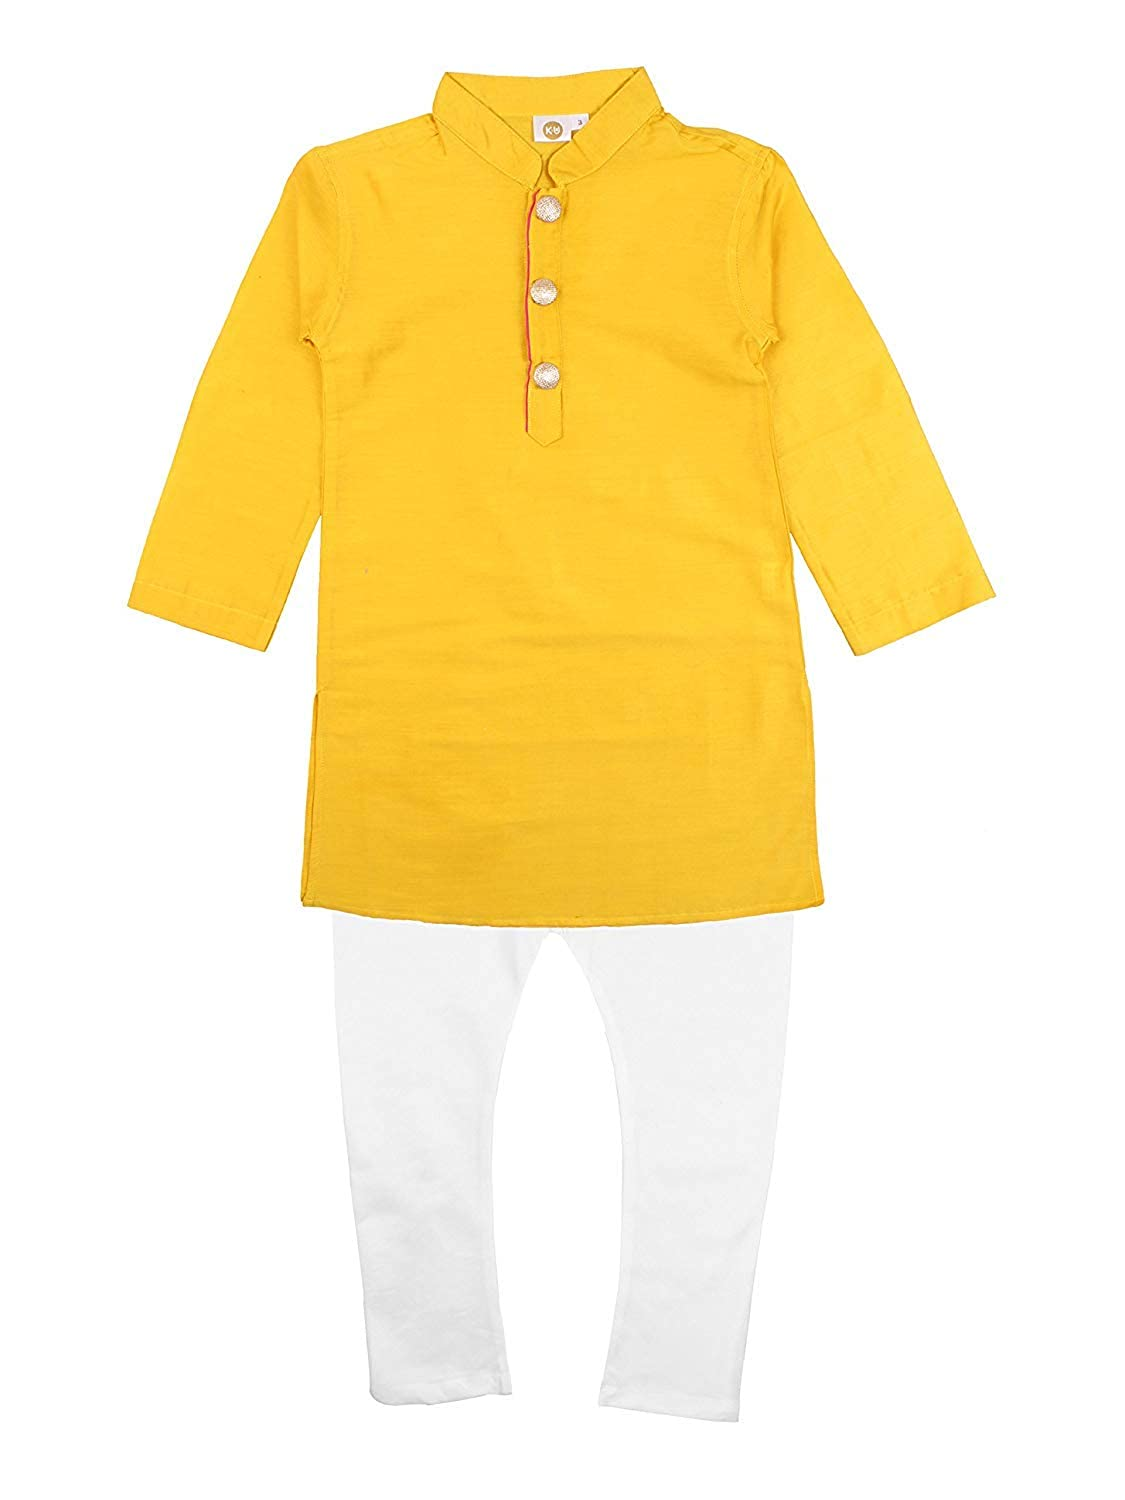 7014 Yellow Kurta with White Pajama K/&U Boys Regular Fit Silk Kurta Pajama Set